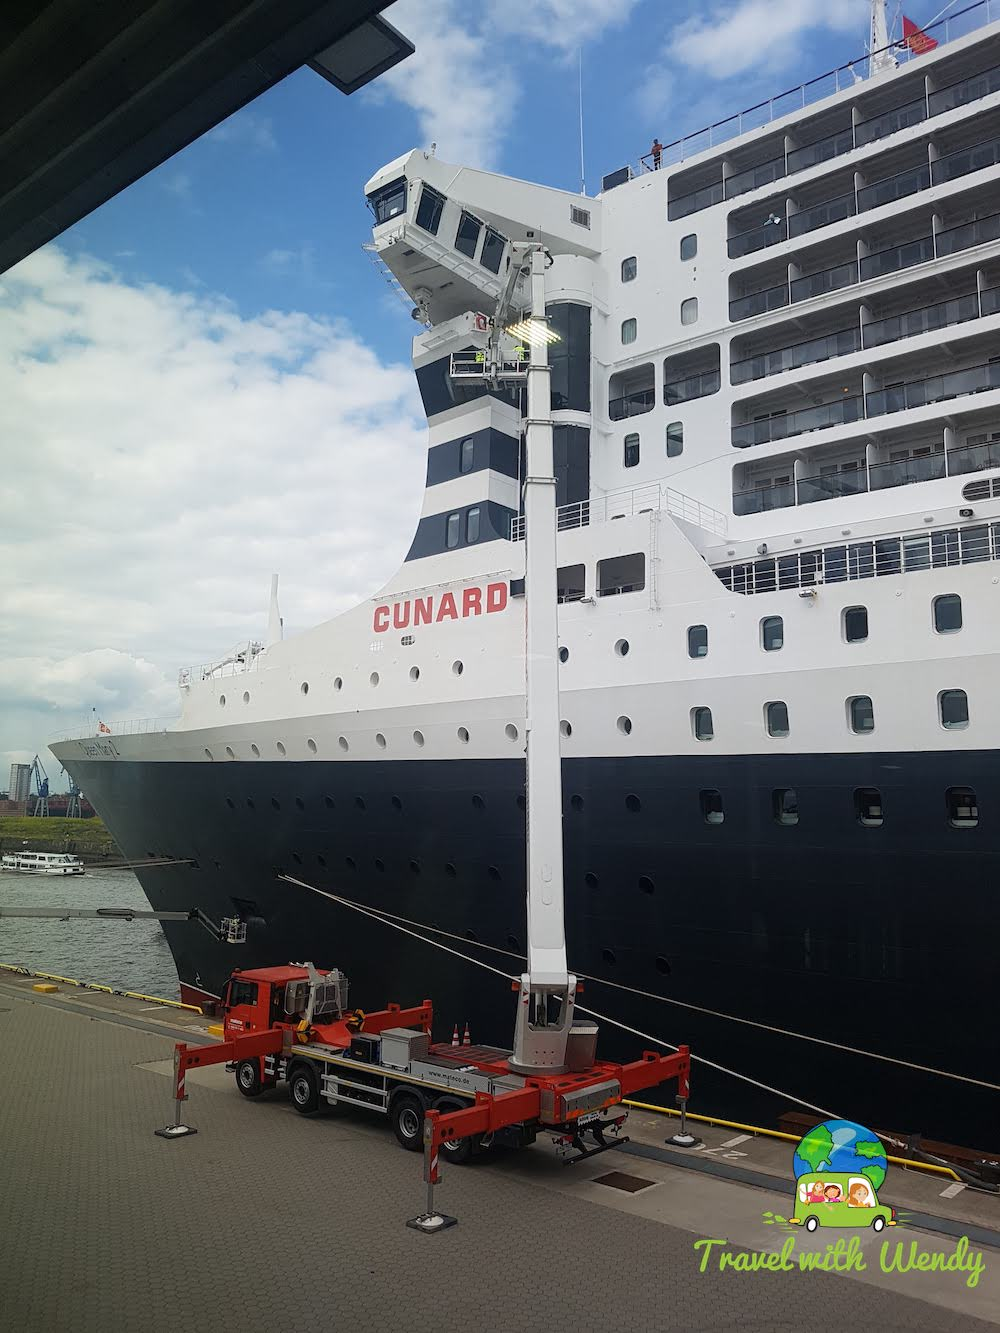 Front Bow - not your ordinary Cruise ship